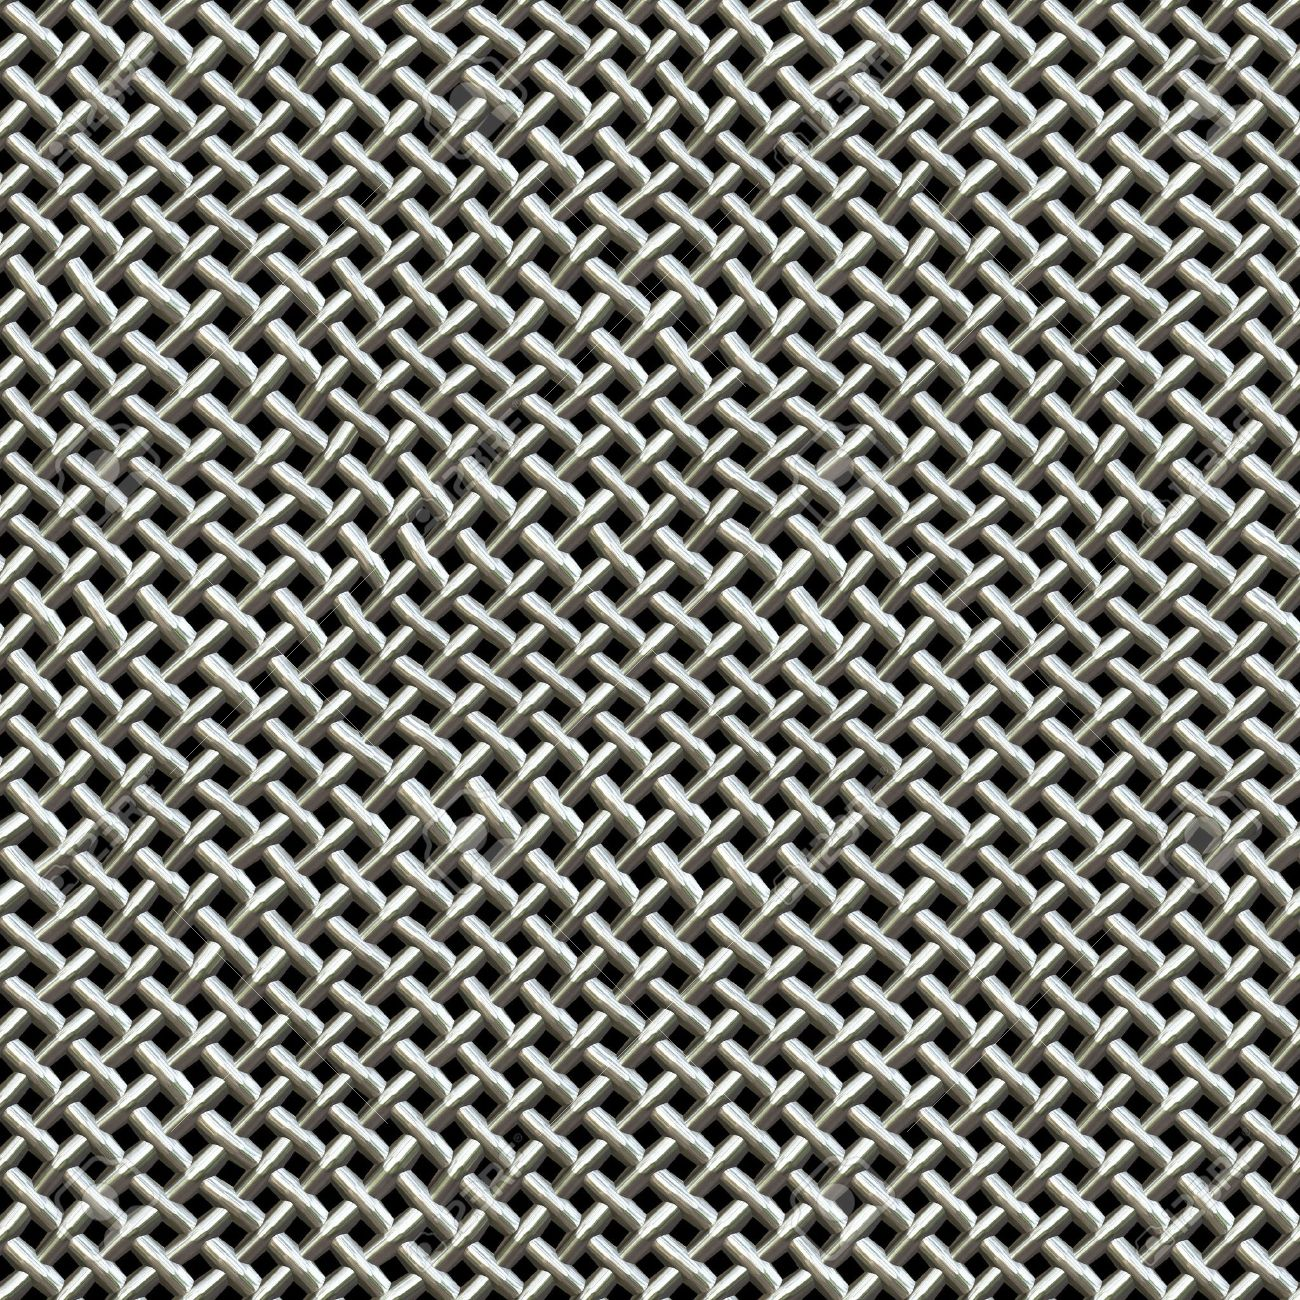 A silver metal wire mesh texture found on microphones.  This tiles seamlessly as a pattern in all directions. Stock Photo - 6624697